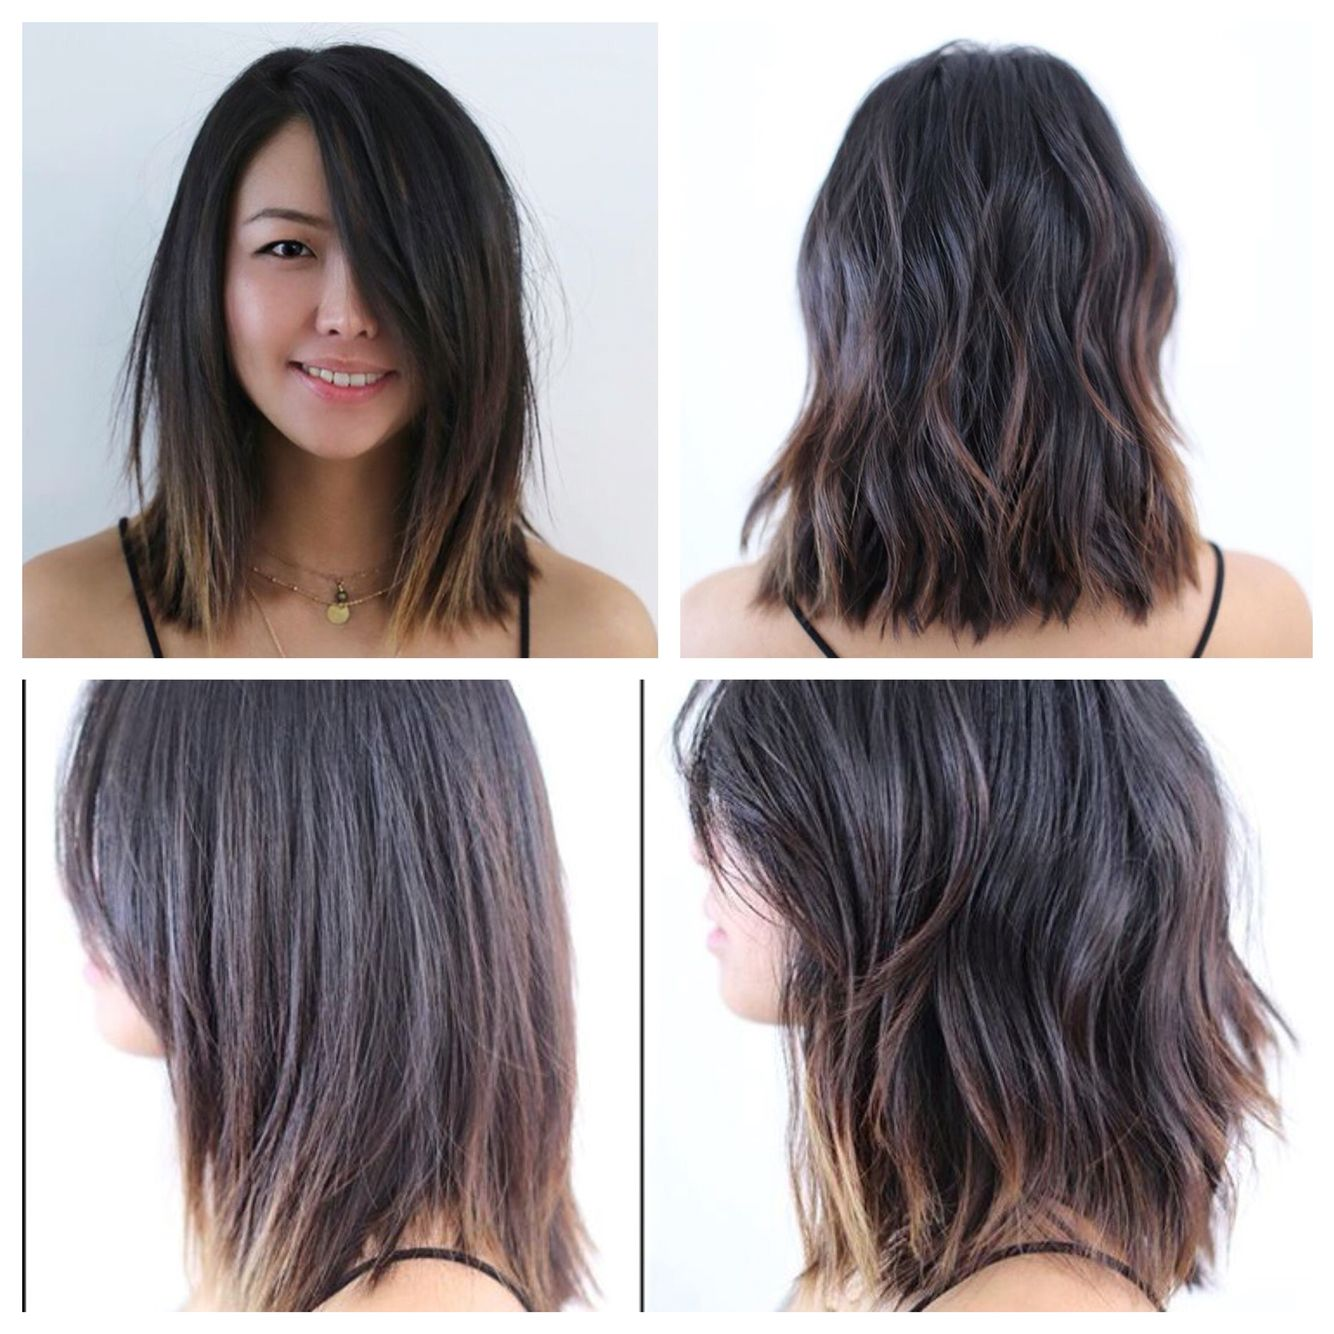 Mid Length Hair Blunt Soft Undercut Soft Waves Lived In Hair Layers Moveme Blunt Haircut With Layers Thick Hair Styles Medium Mid Length Layered Haircuts